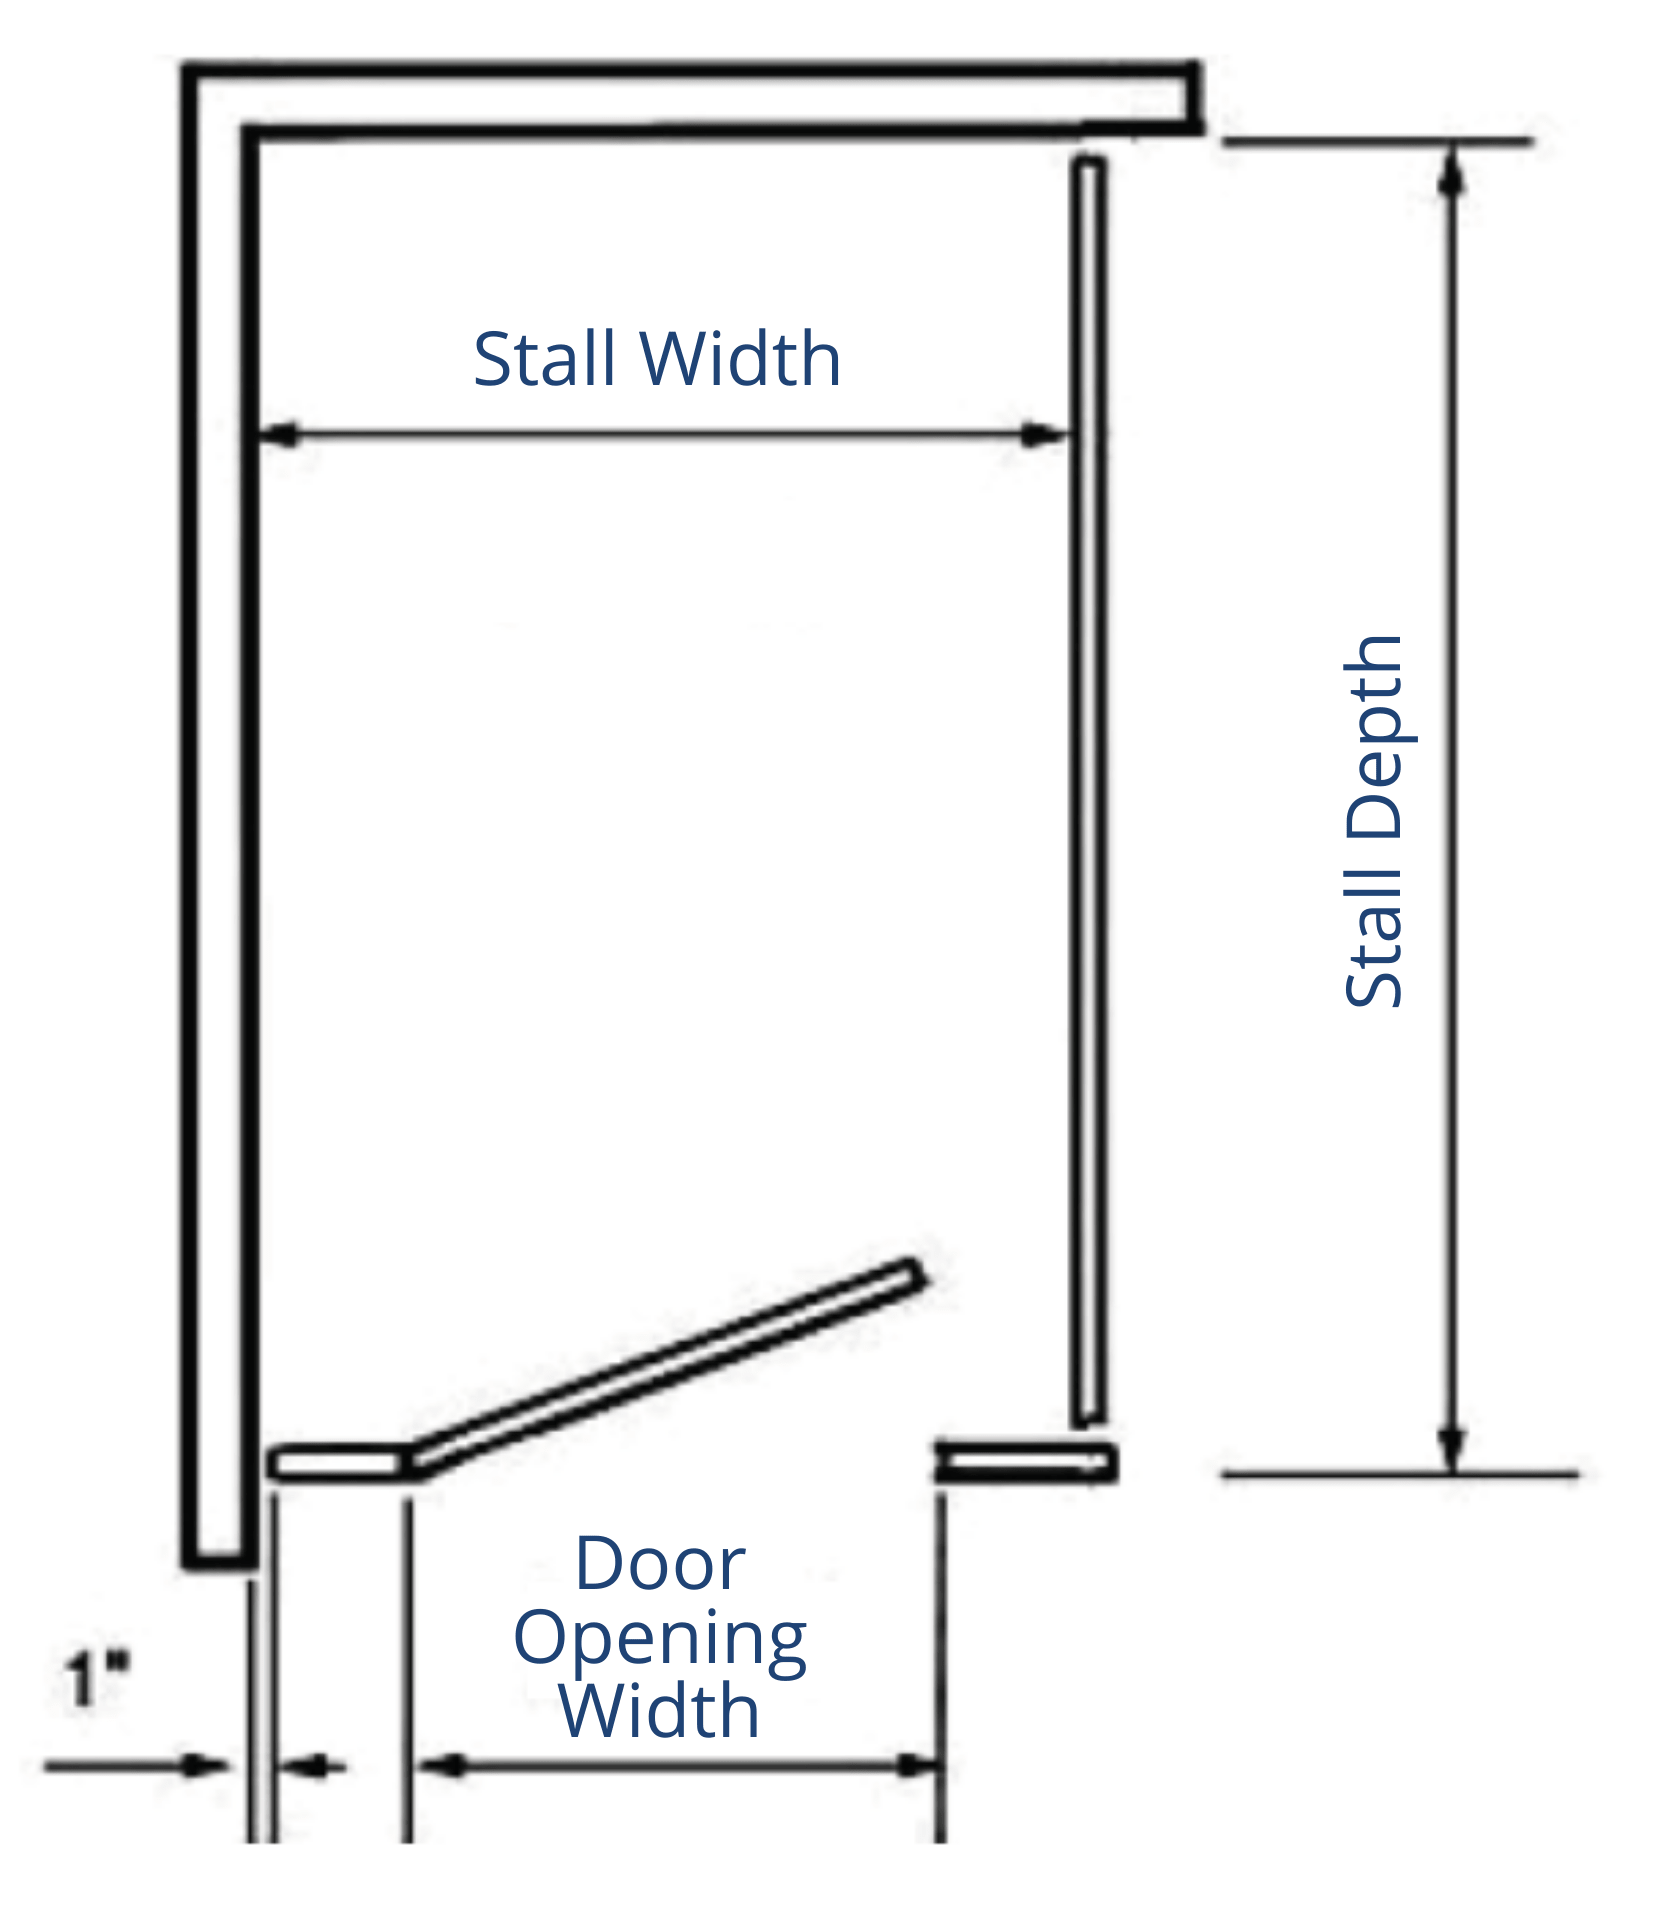 1 Stall in a corner Diagram